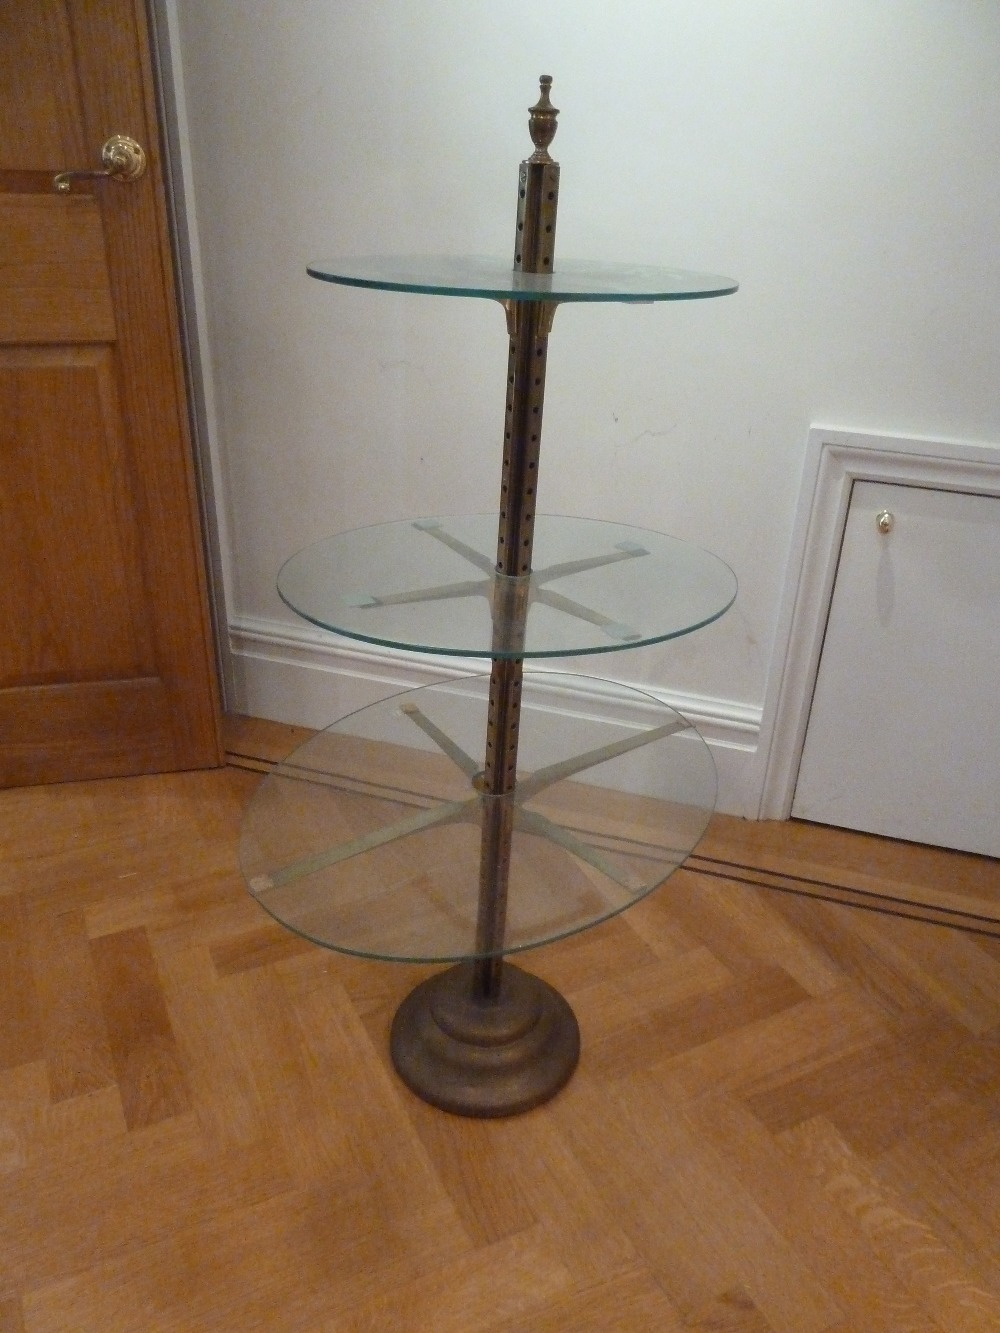 Lot 37 - A brass and glass three tier stand with urn finial on raised circular base